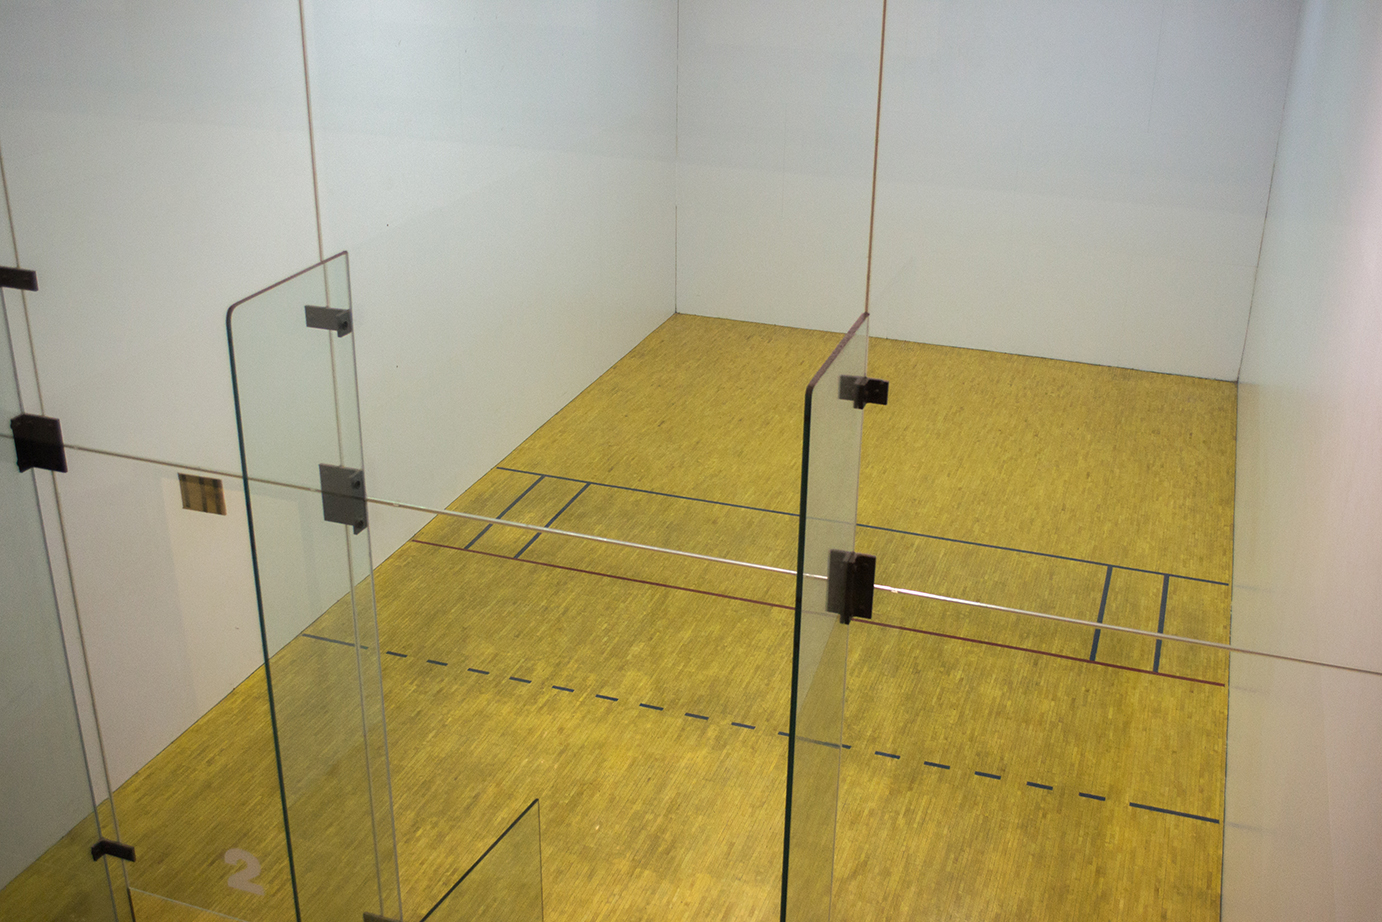 racquetball court handball fitness room venue reservation rental space usf campus rec recreation